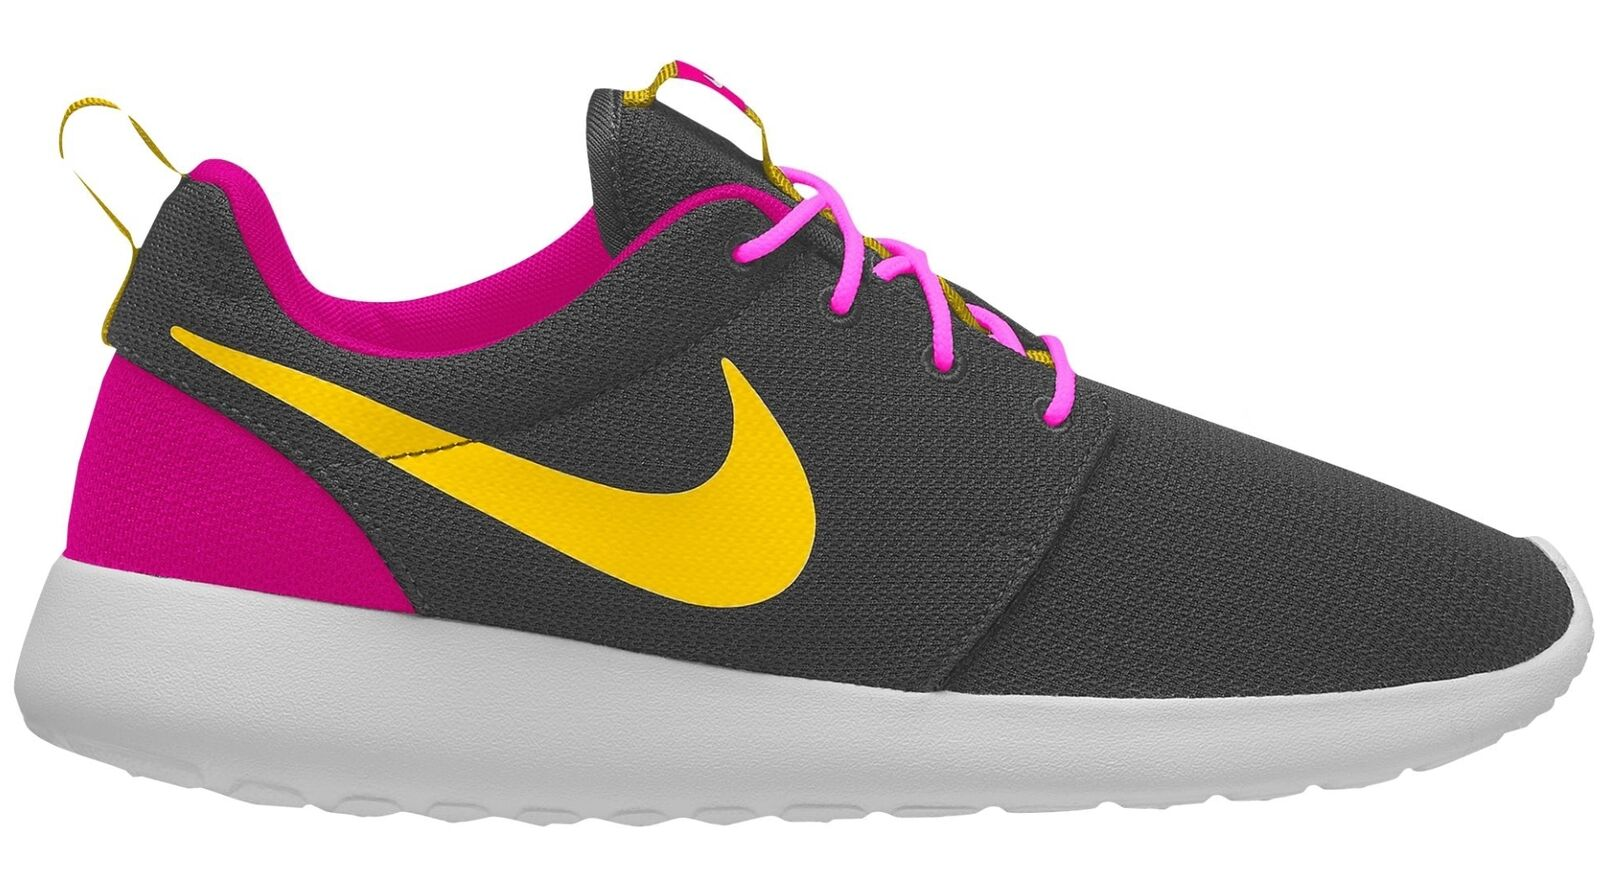 Nike Roshe One Mens 511881-035 Anthracite Magenta Yellow Running Shoes Size 10.5